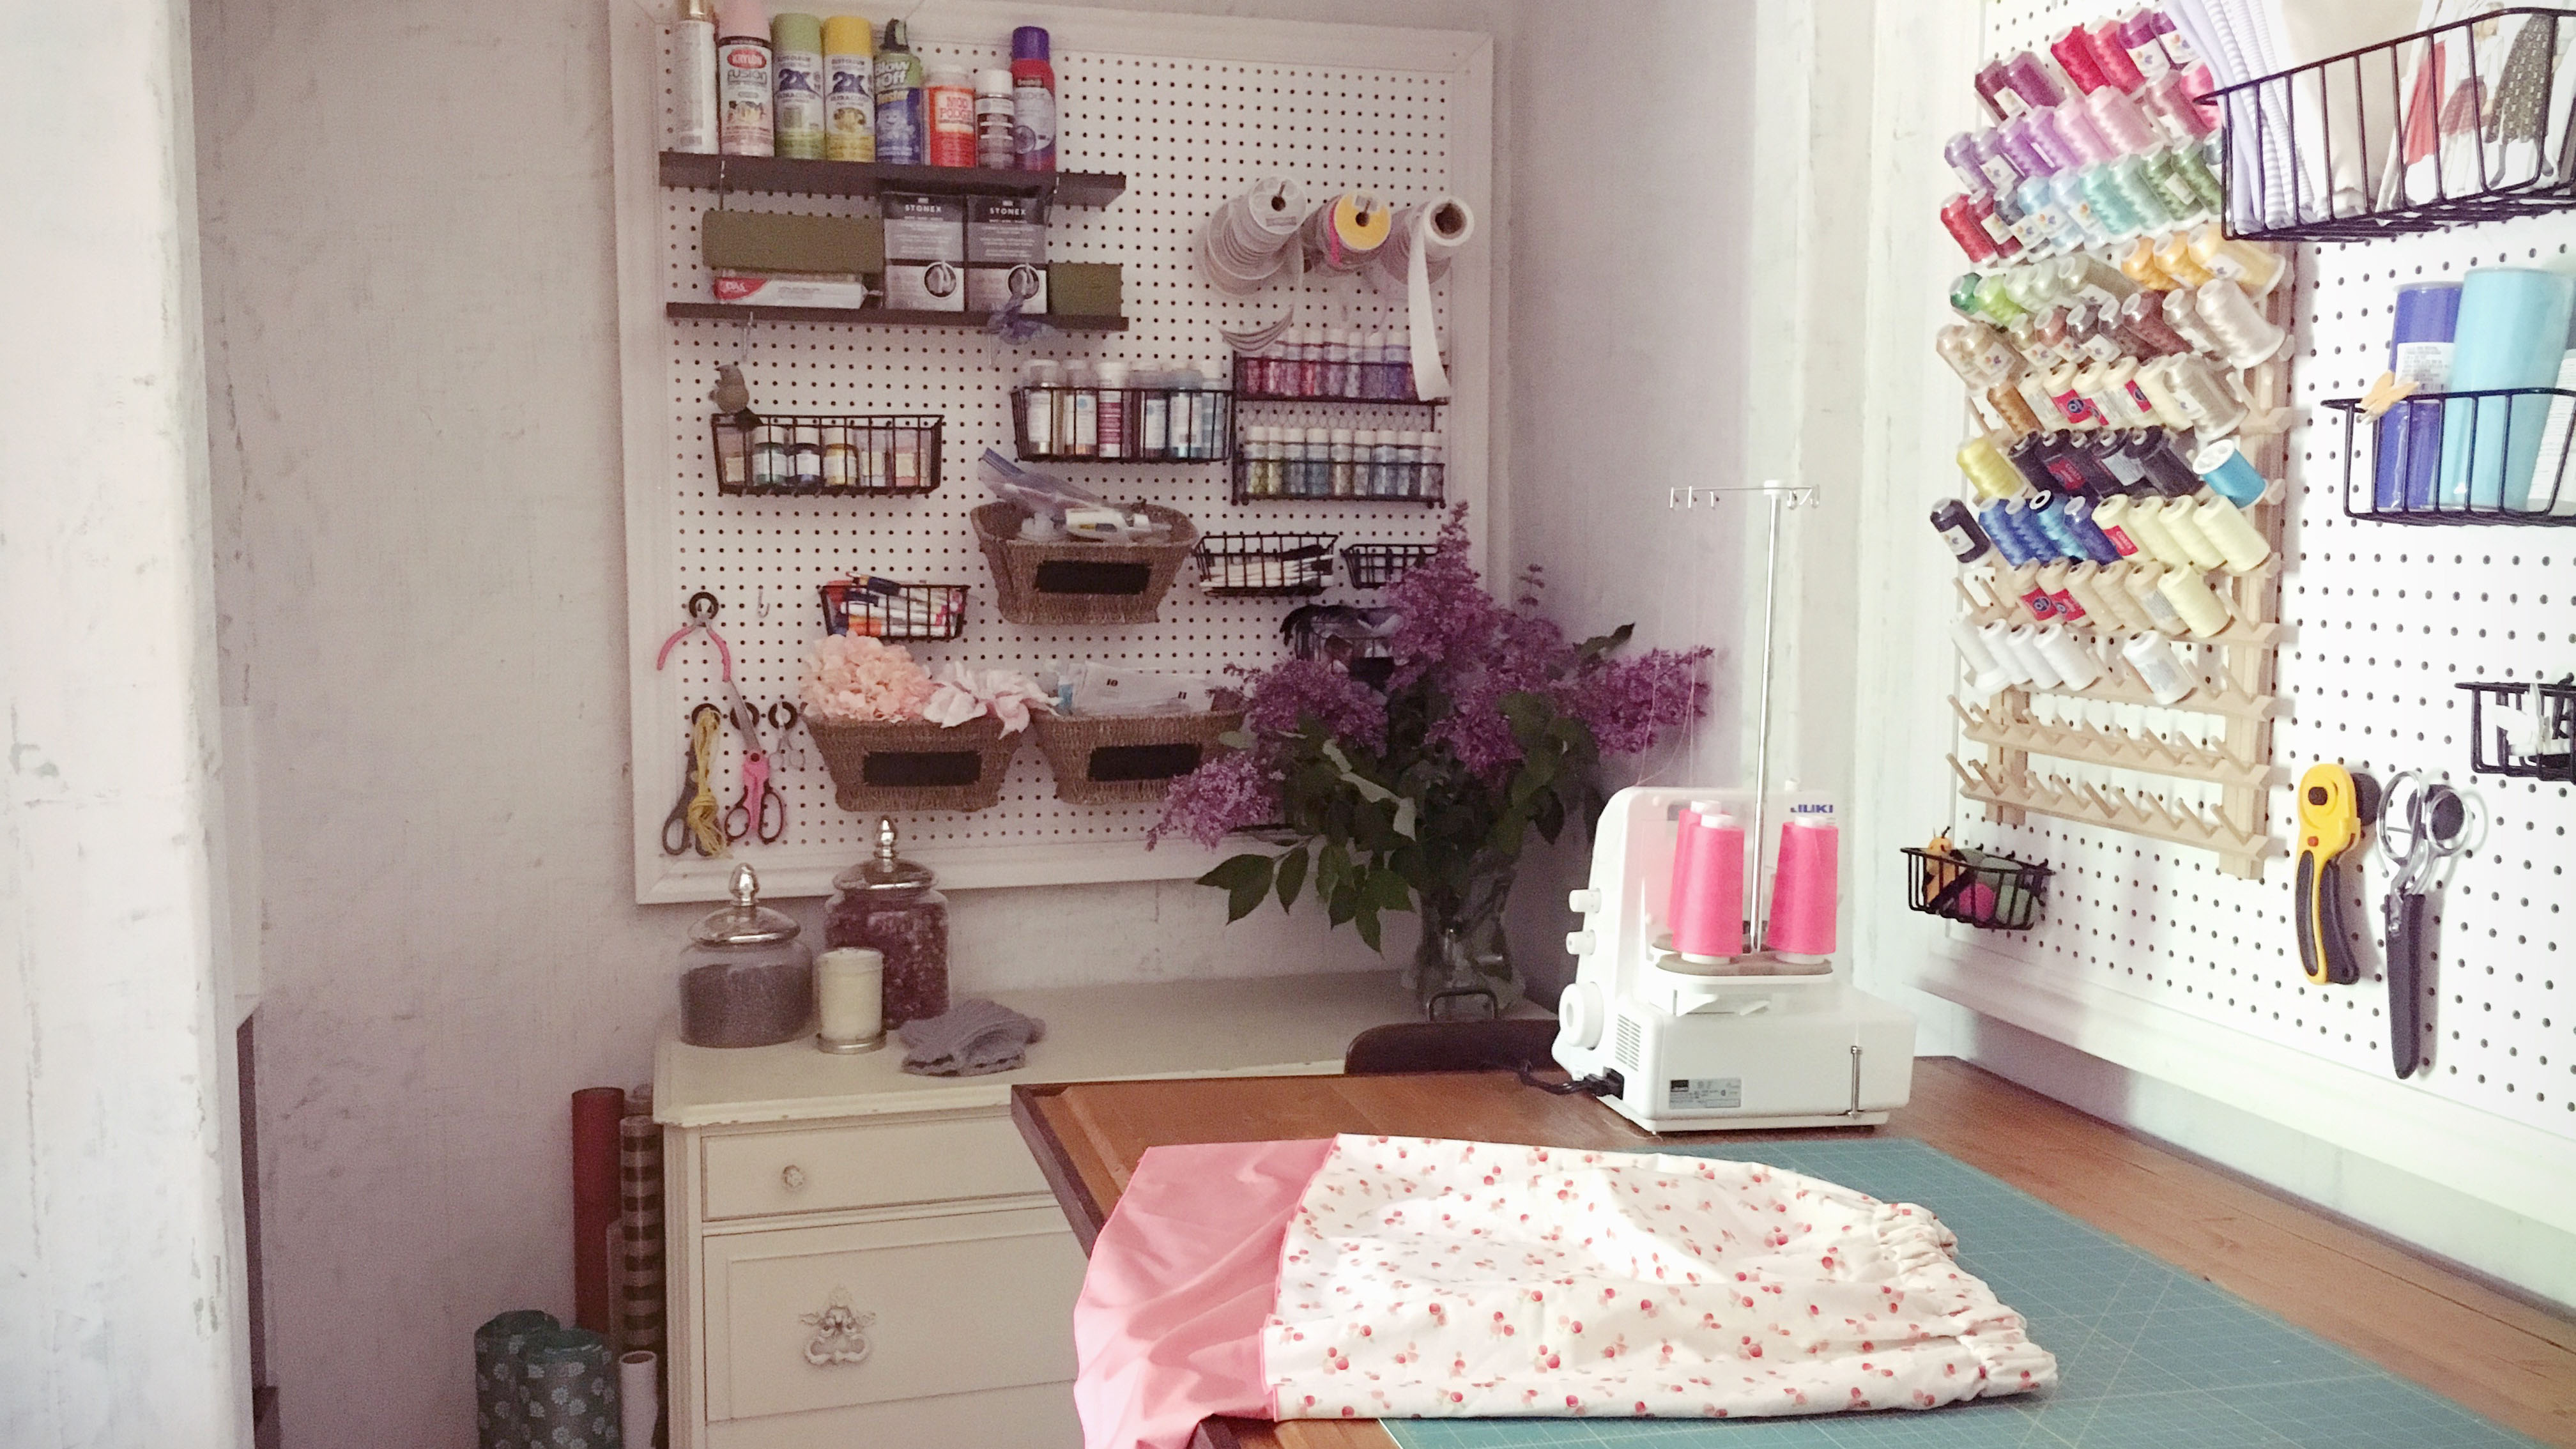 Perfectly organized and beautiful to boot!